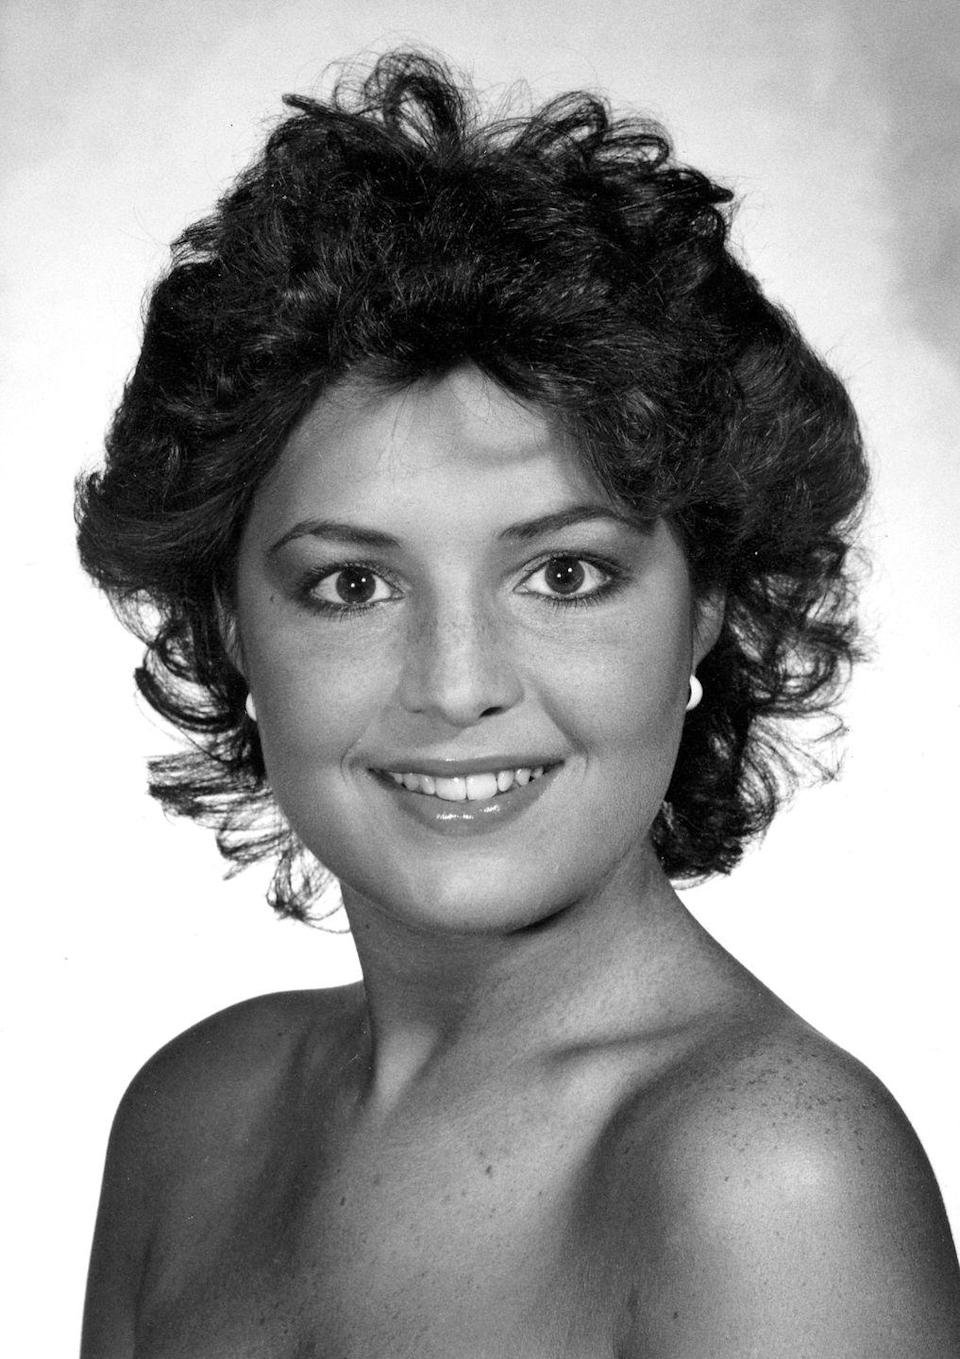 <p>In 1984, the future Governor of Alaska won the Miss Wasilla pageant, then went on to compete in the Miss Alaska beauty pageant, taking third place overall.</p>